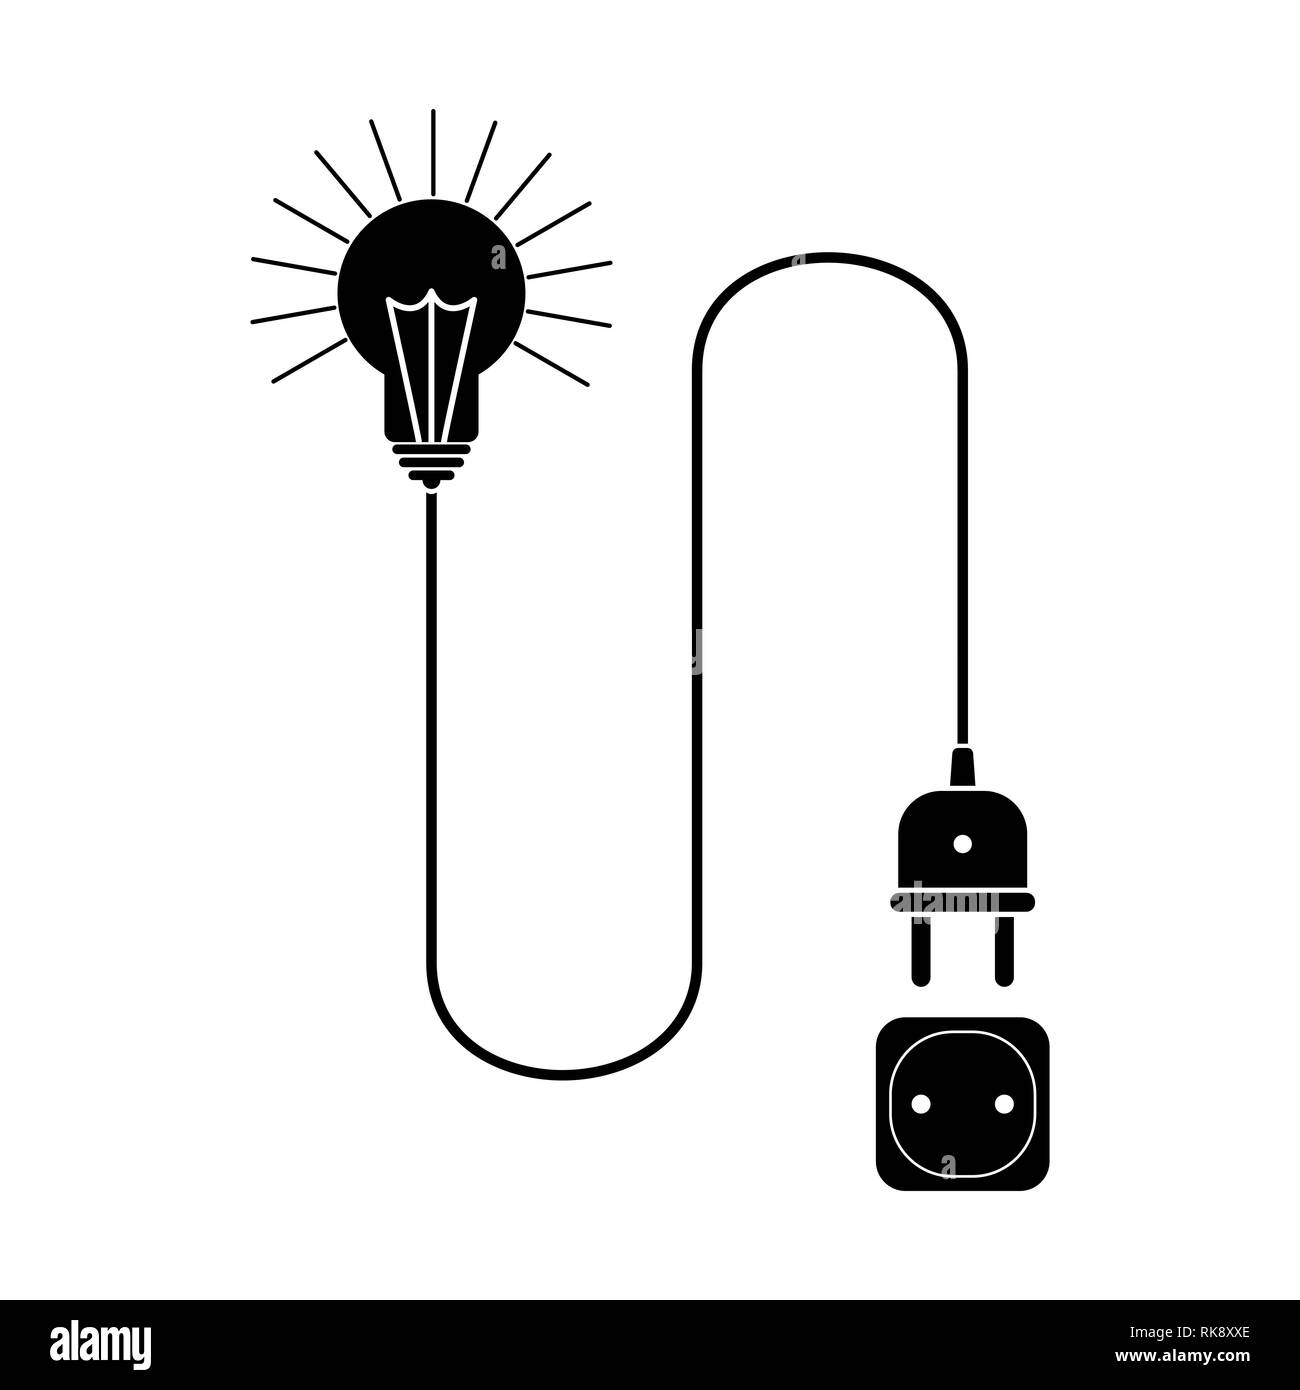 light bulb with a wire and a plug is connected to an electrical outlet - Stock Vector